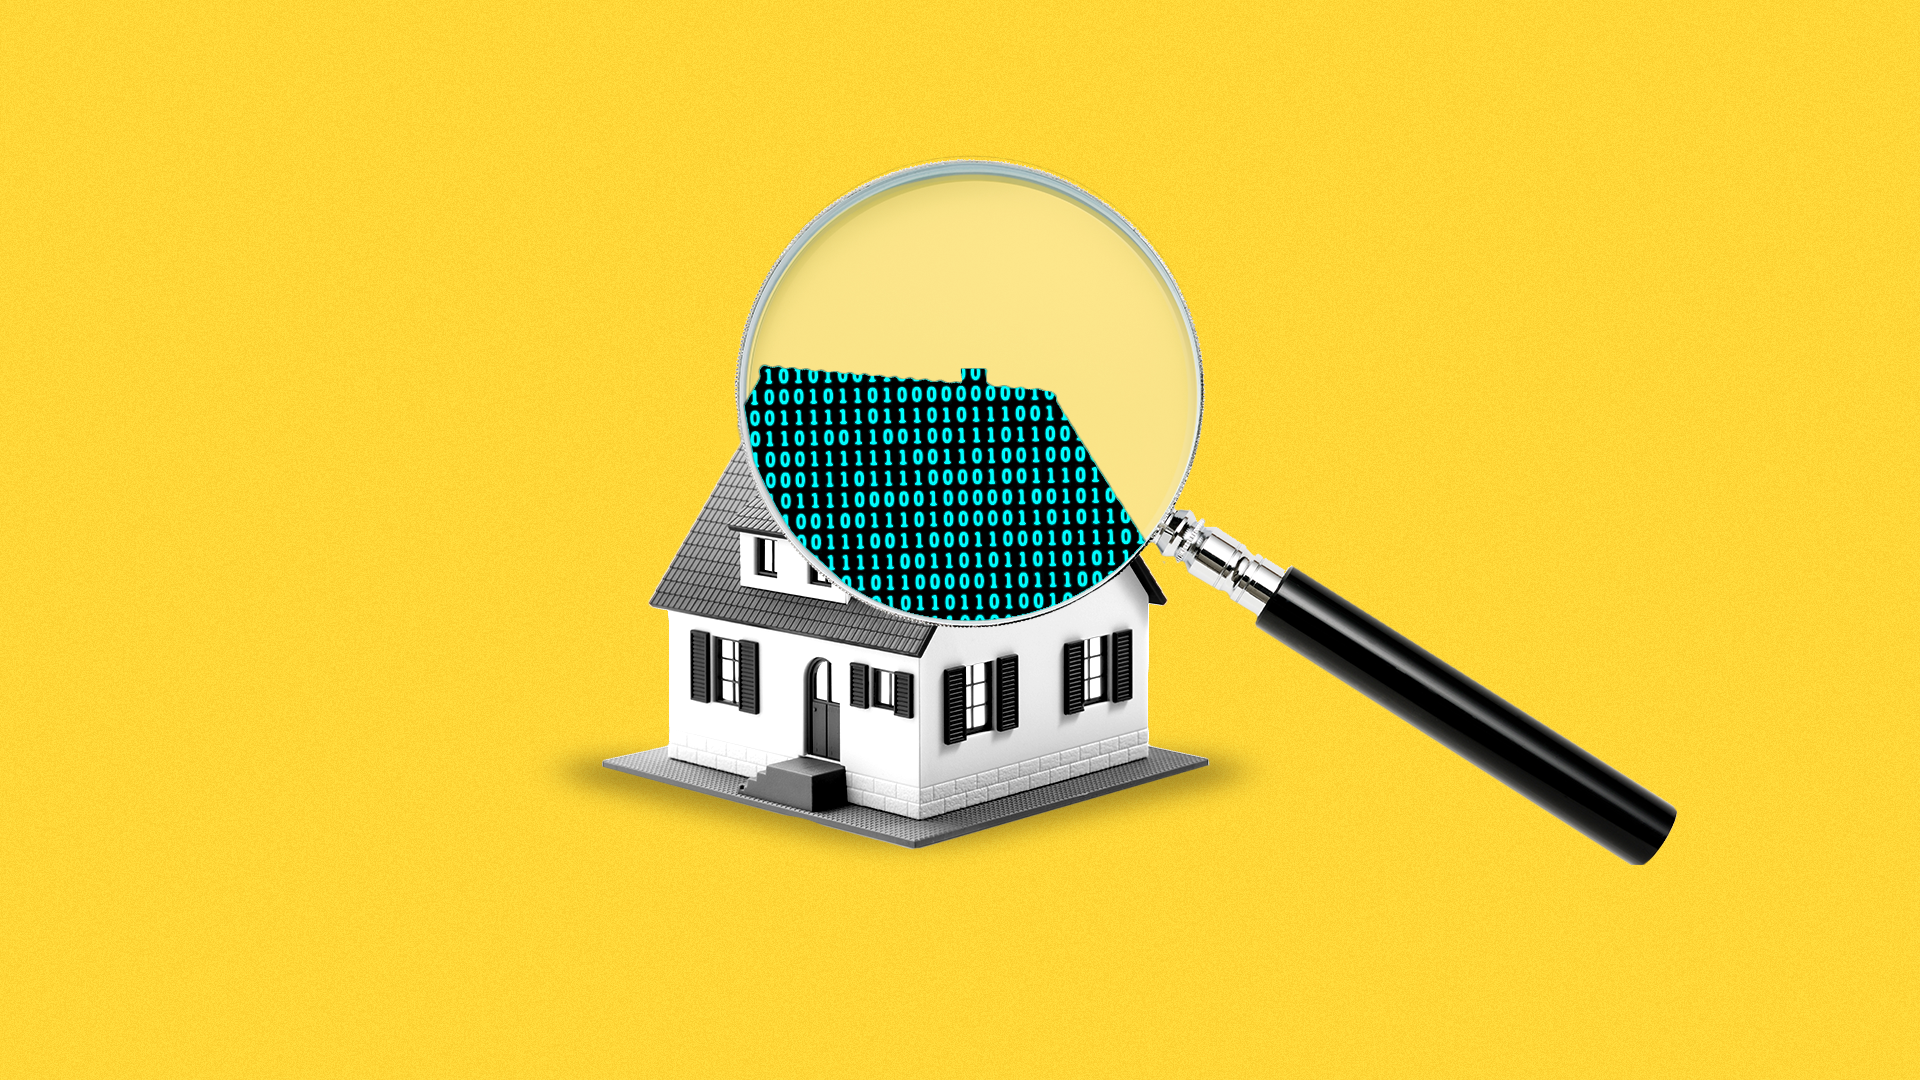 Illustration of a house with a magnifying glass revealing binary code